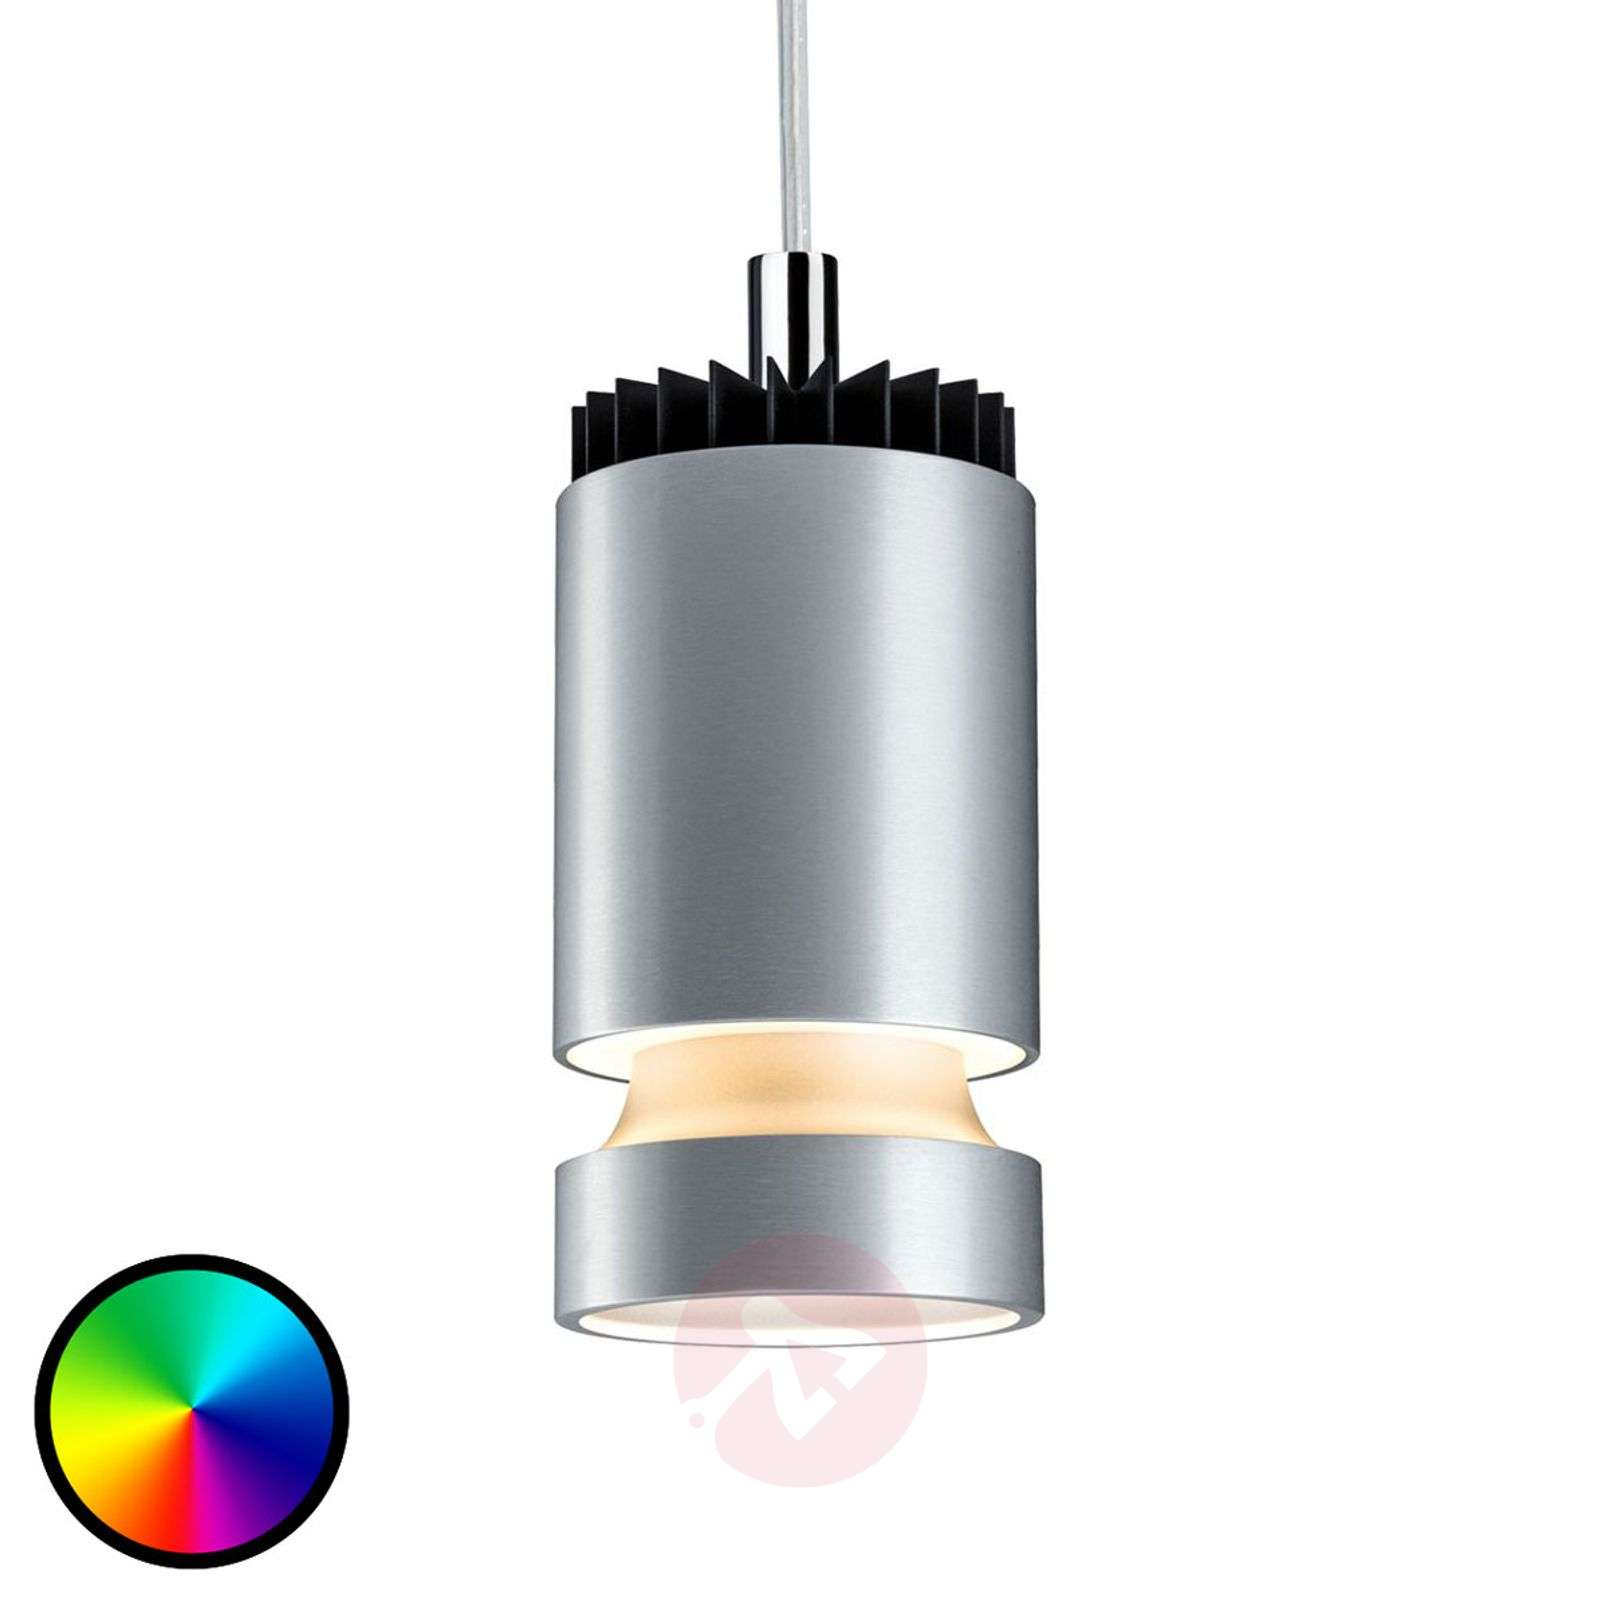 Paulmann VariLine suspension LED Shine, 2 700 K-7601494-01